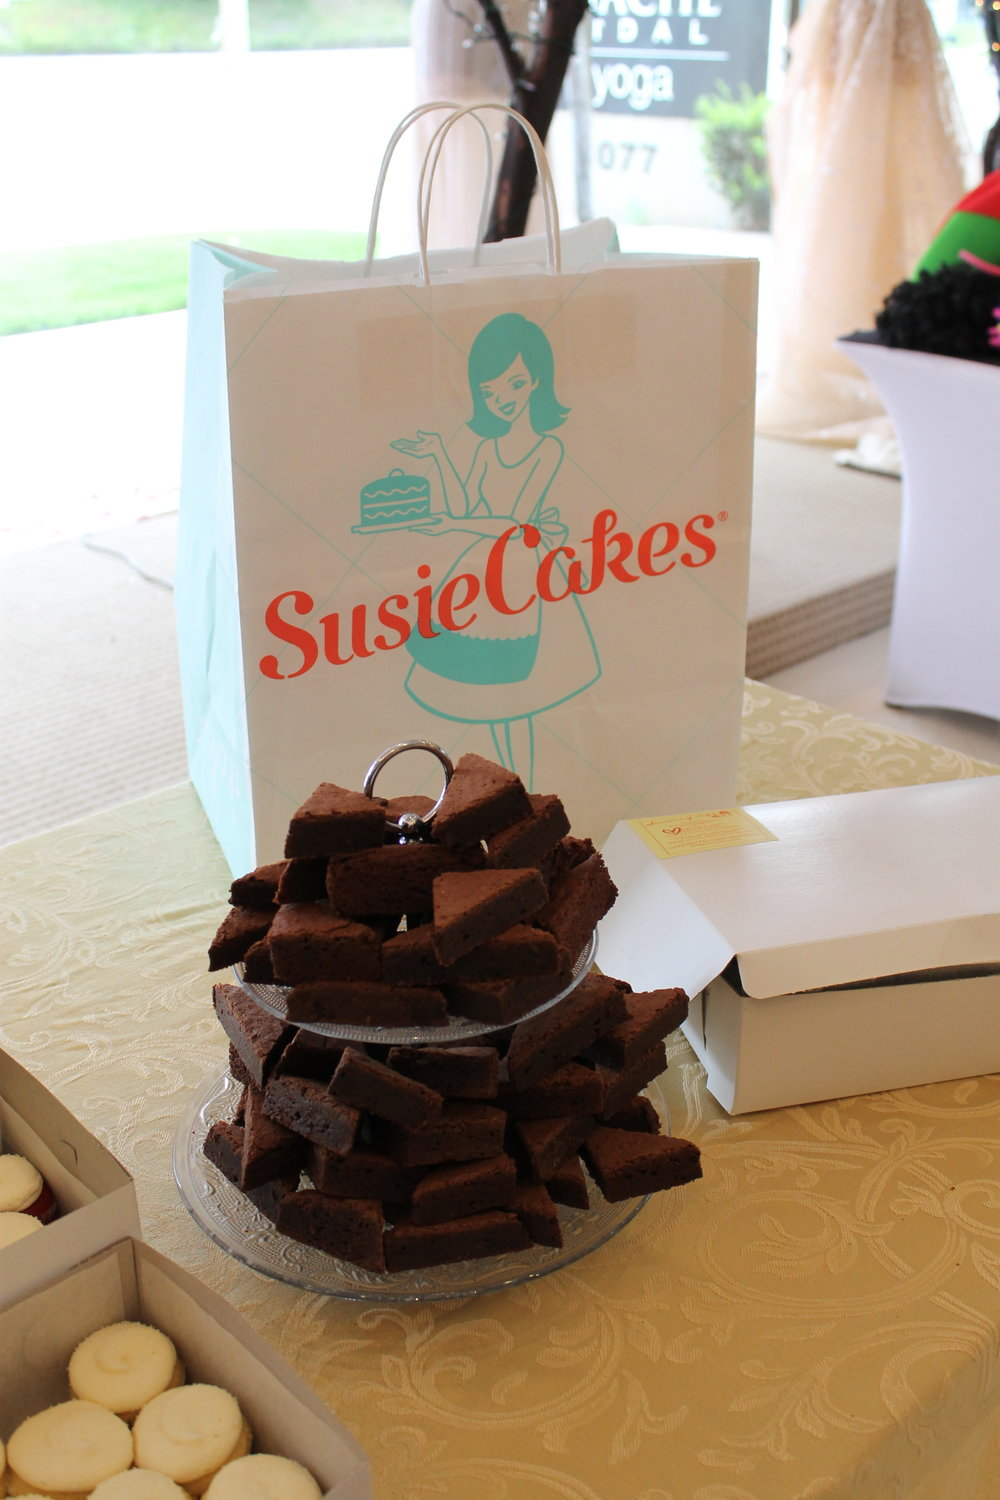 Decadent brownies and yummy cupcakes by Susie Cakes